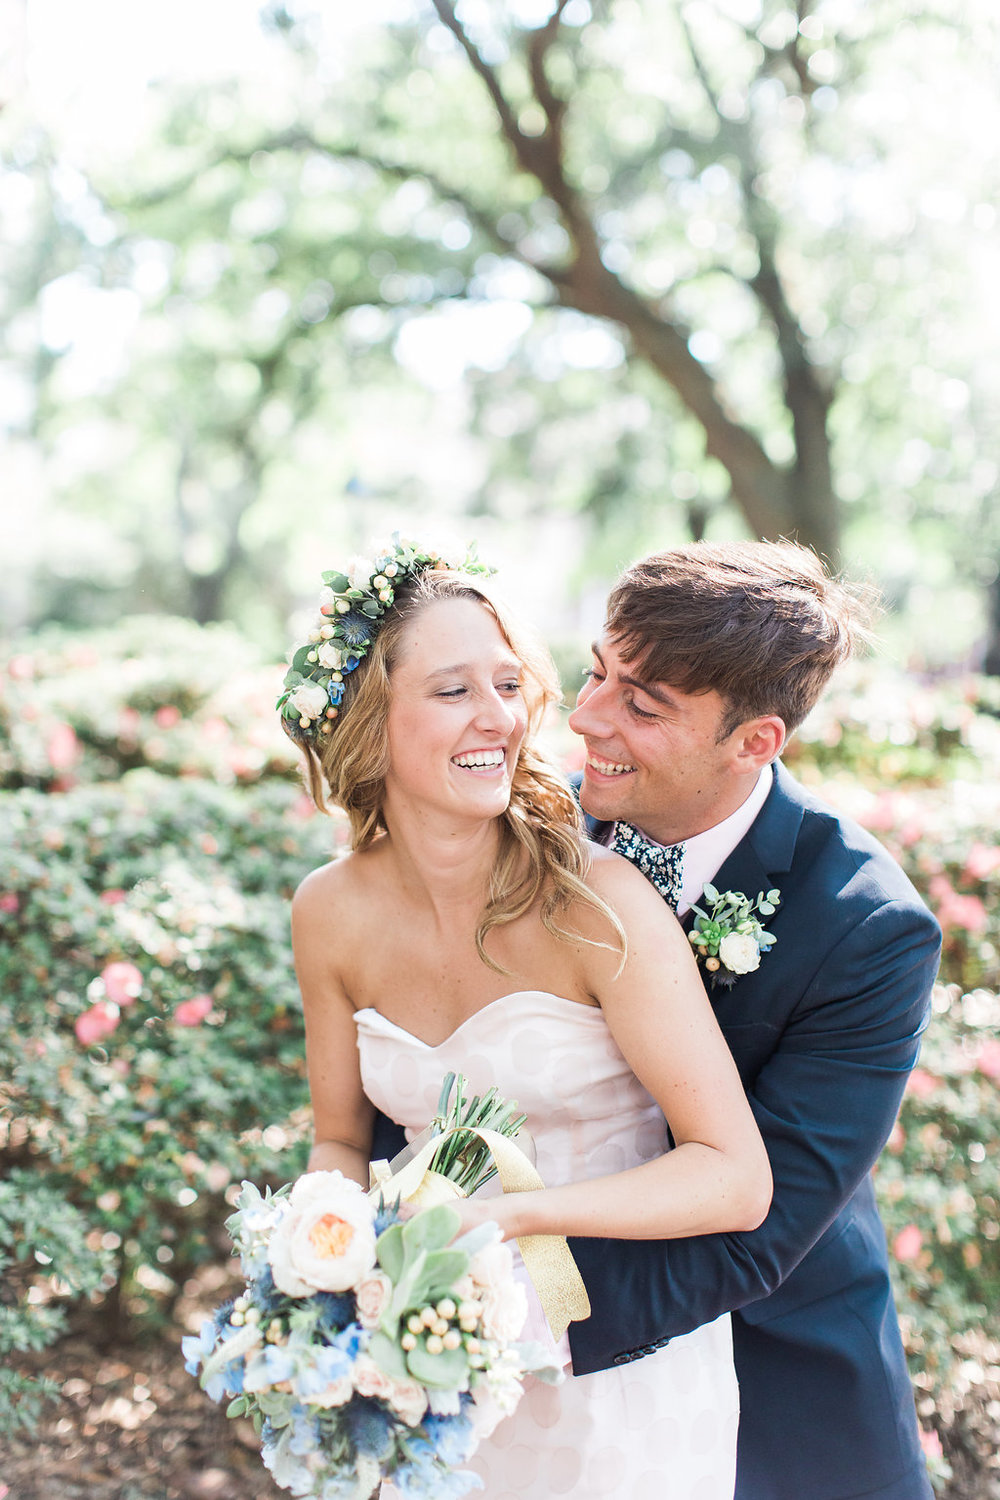 eve-pat-apt-b-photography-Jacklynn-bridal-blush-wedding-dress-polka-dot-wedding-dress-ivory-and-beau-bridal-boutique-savannah-wedding-harry-potter-wedding-savannah-bridal-boutique-savannah-wedding-planner-urban-poppy-florist-soho-south-cafe-wedding-23.JPG